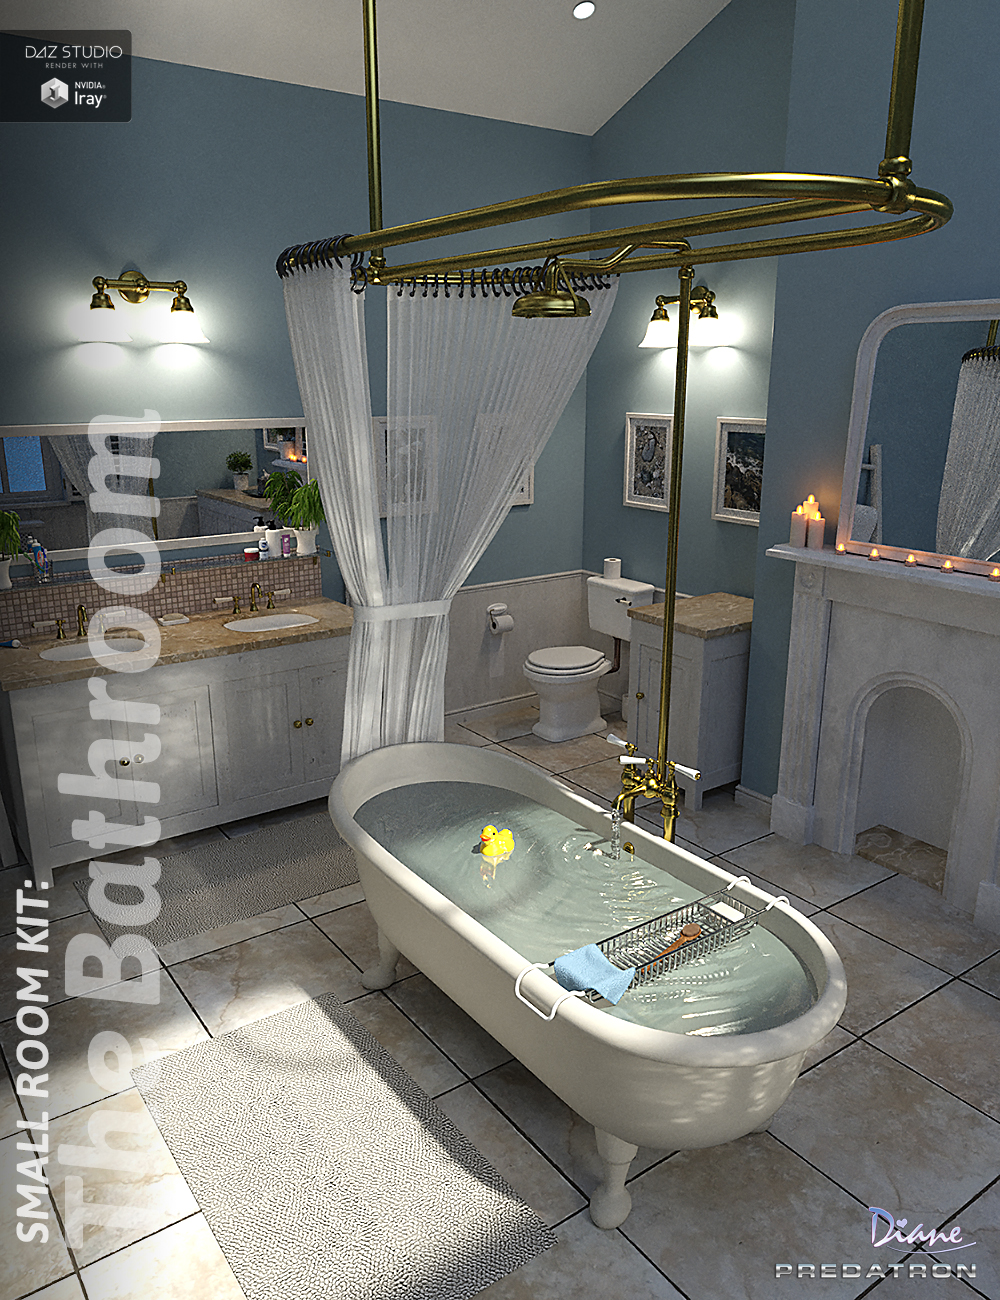 Small Room Kit: Bathroom Props by: PredatronDiane, 3D Models by Daz 3D